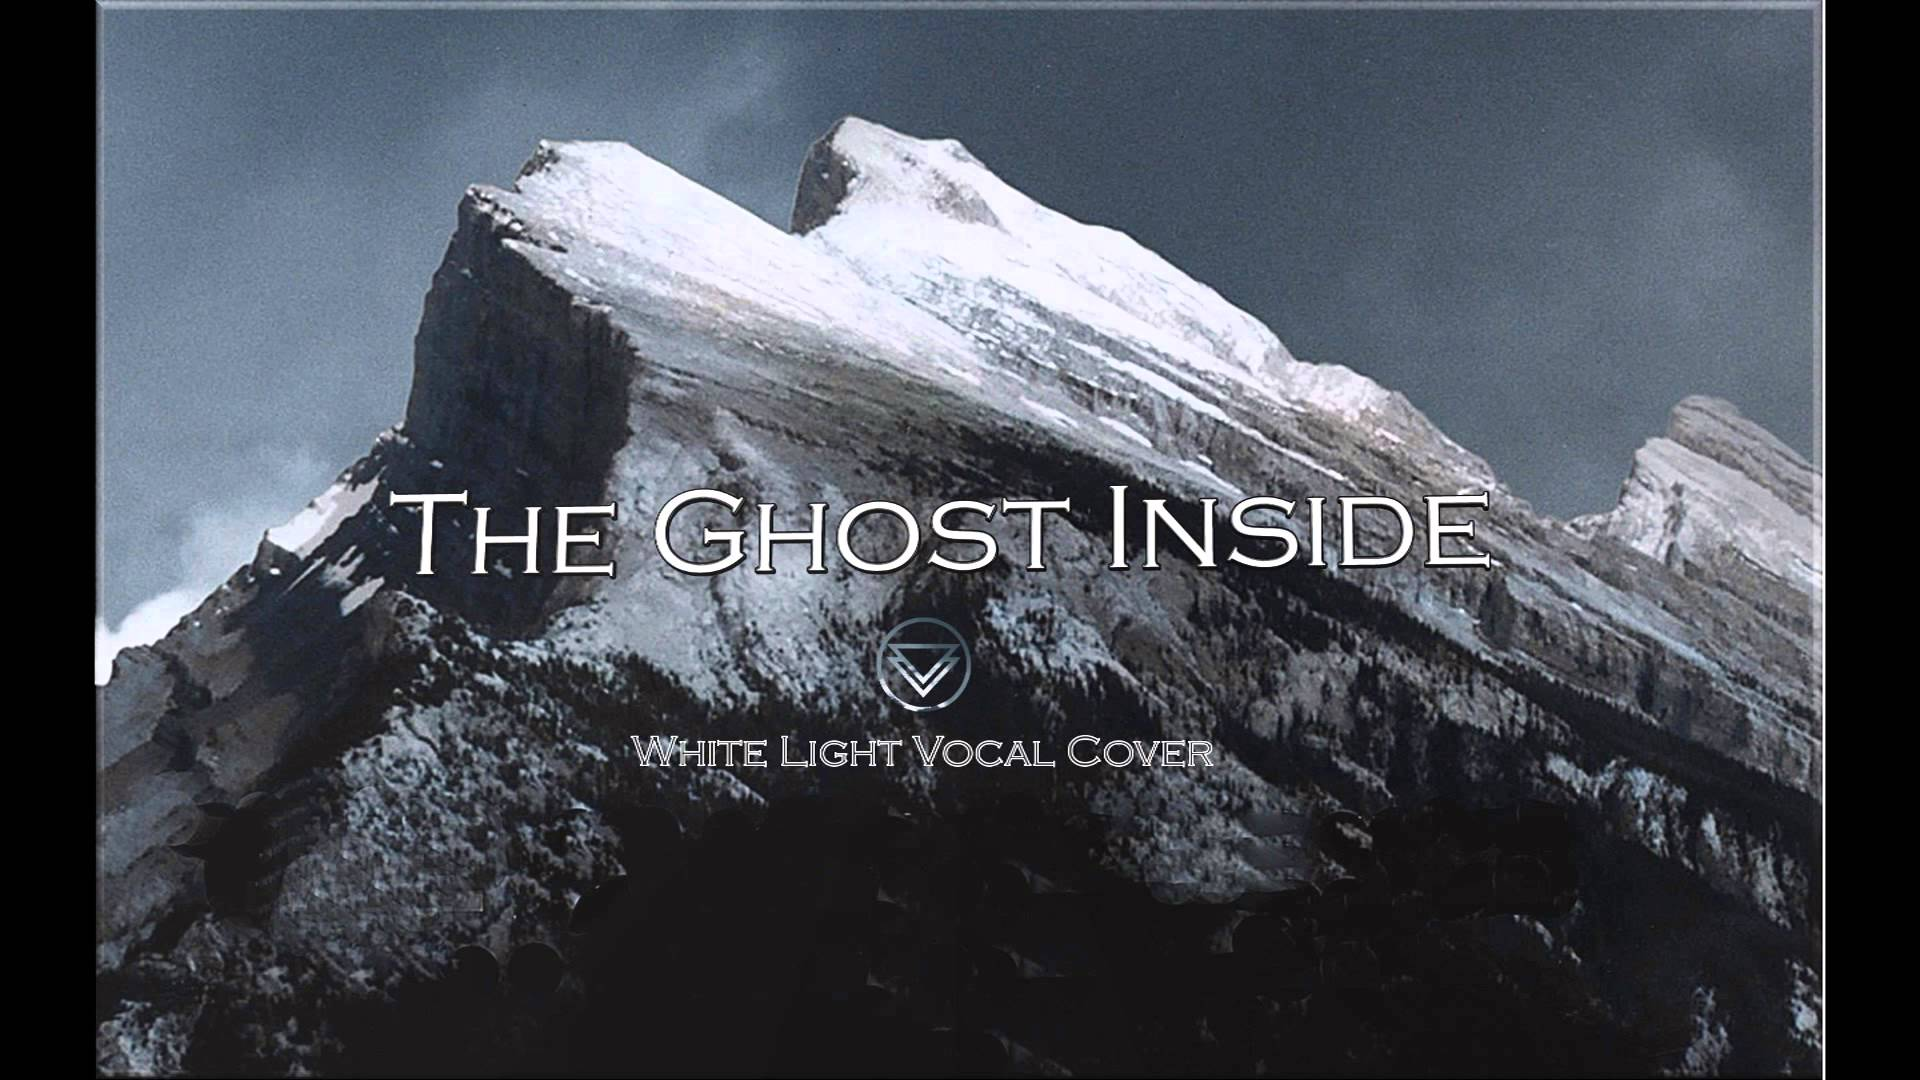 The Ghost Inside   White Light Vocal Cover 1920x1080